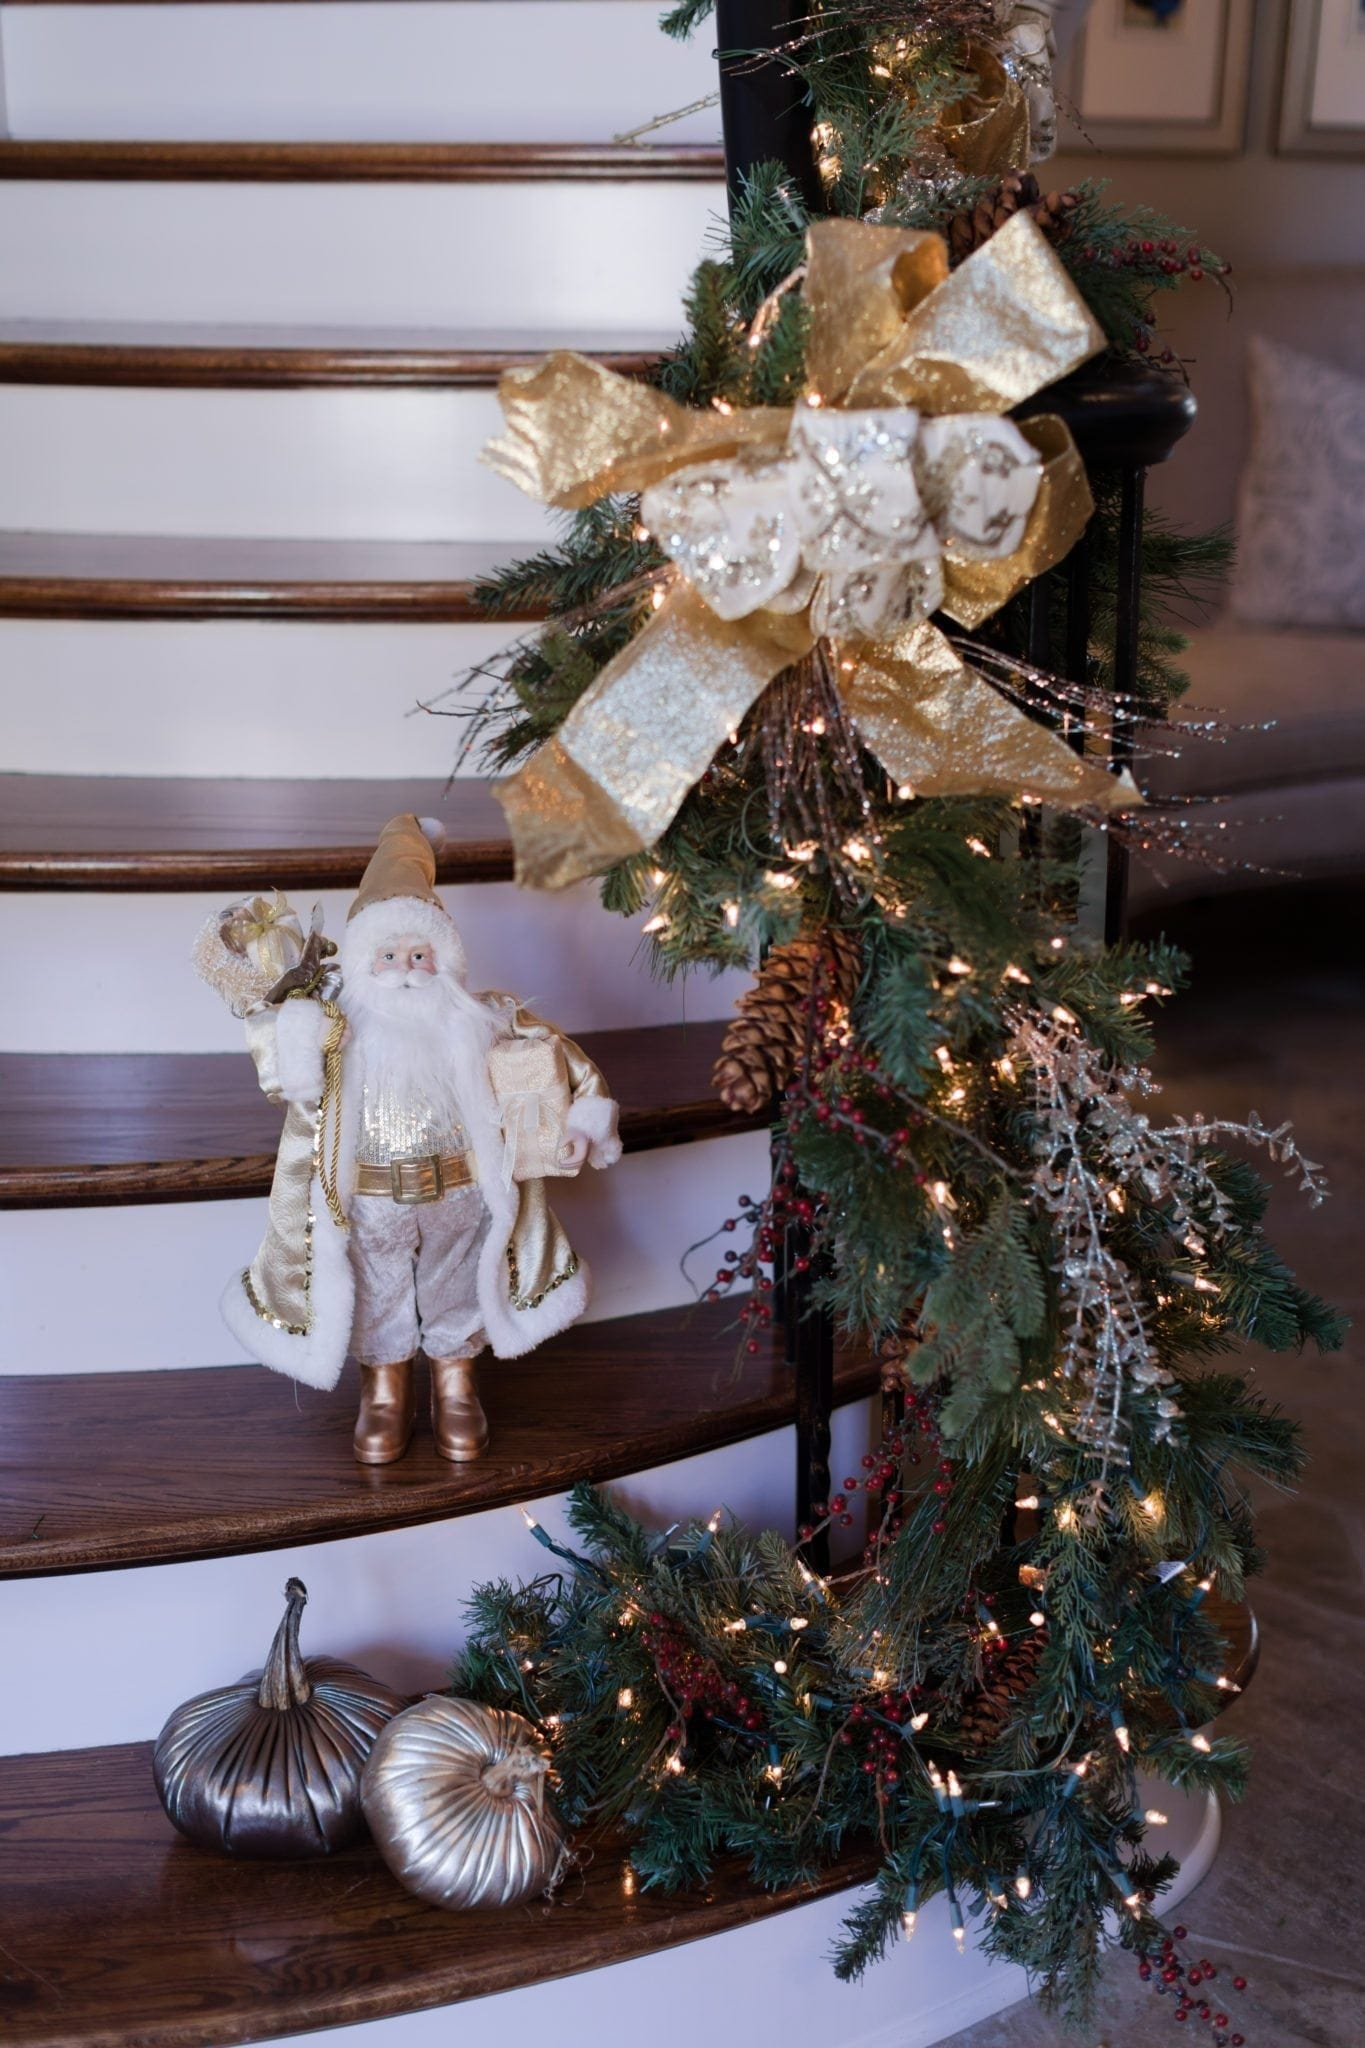 Christmas shophouse style decorating. House tour of Christmas decorations and swagger garland.